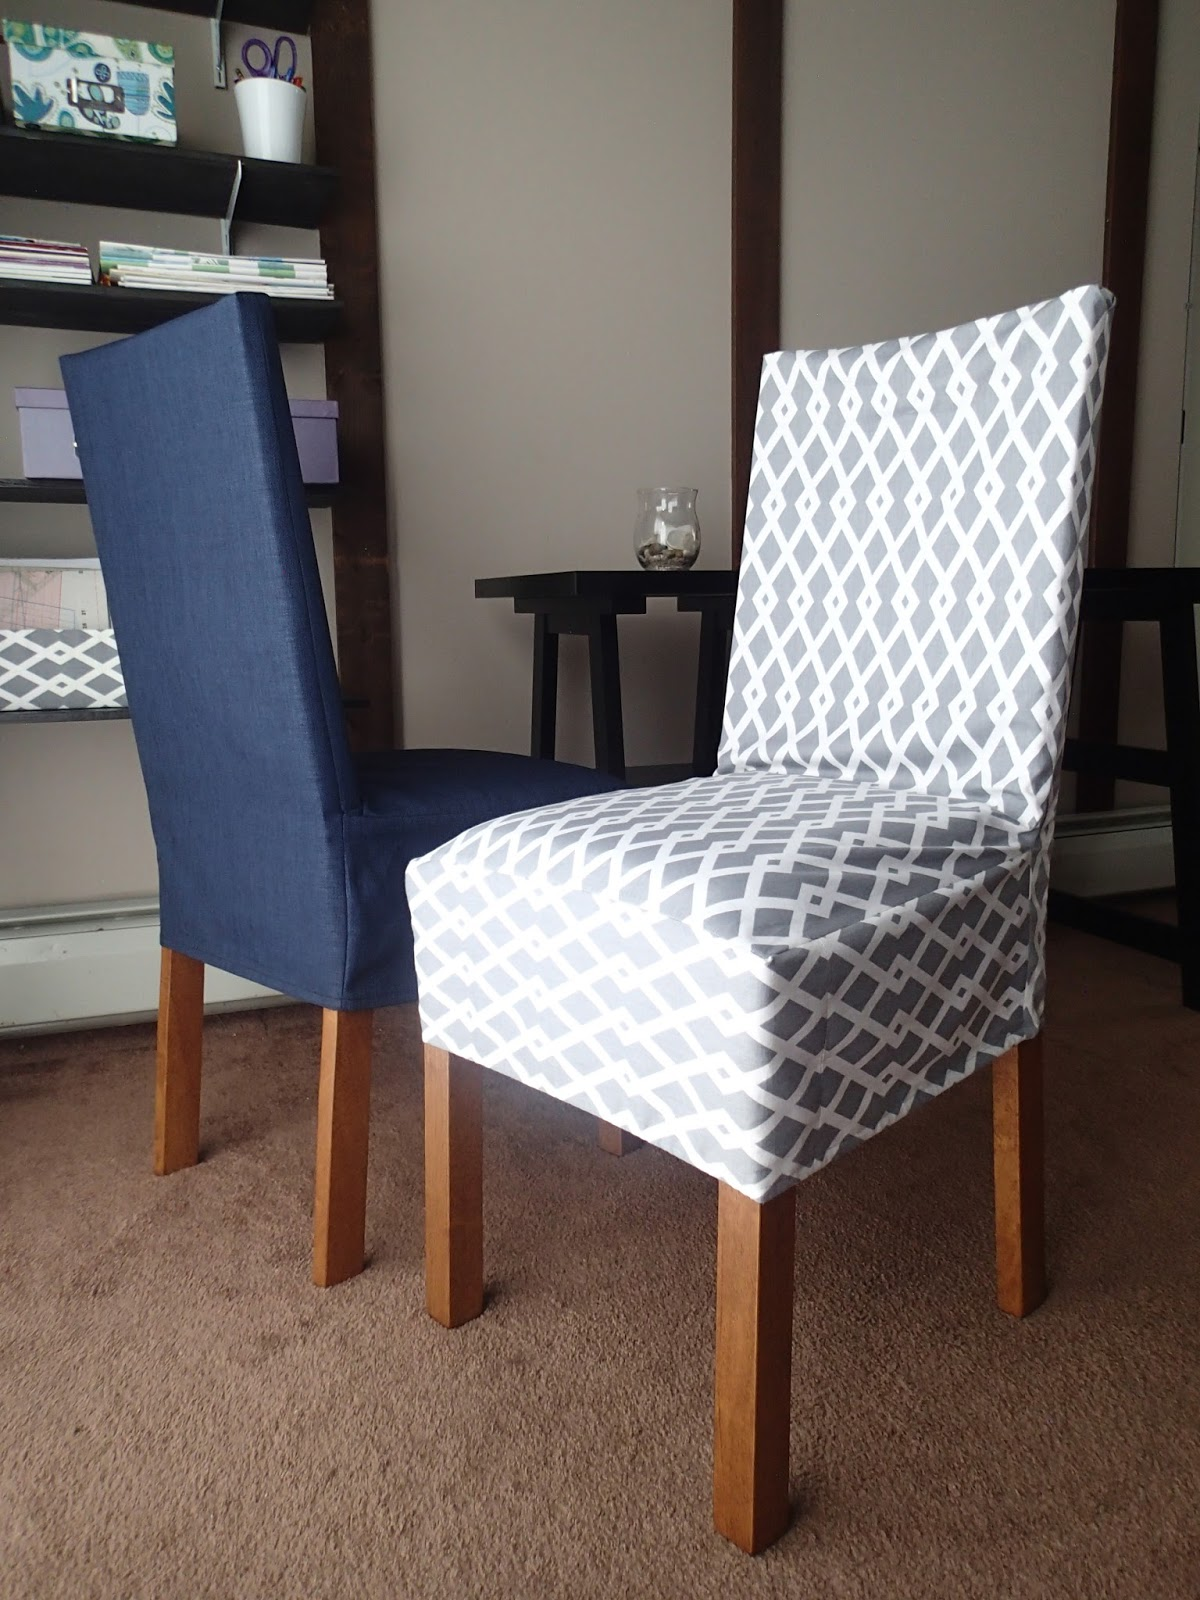 Slip Cover Chairs My Little Girl 39s Dress And More Diy How To Make A Chair